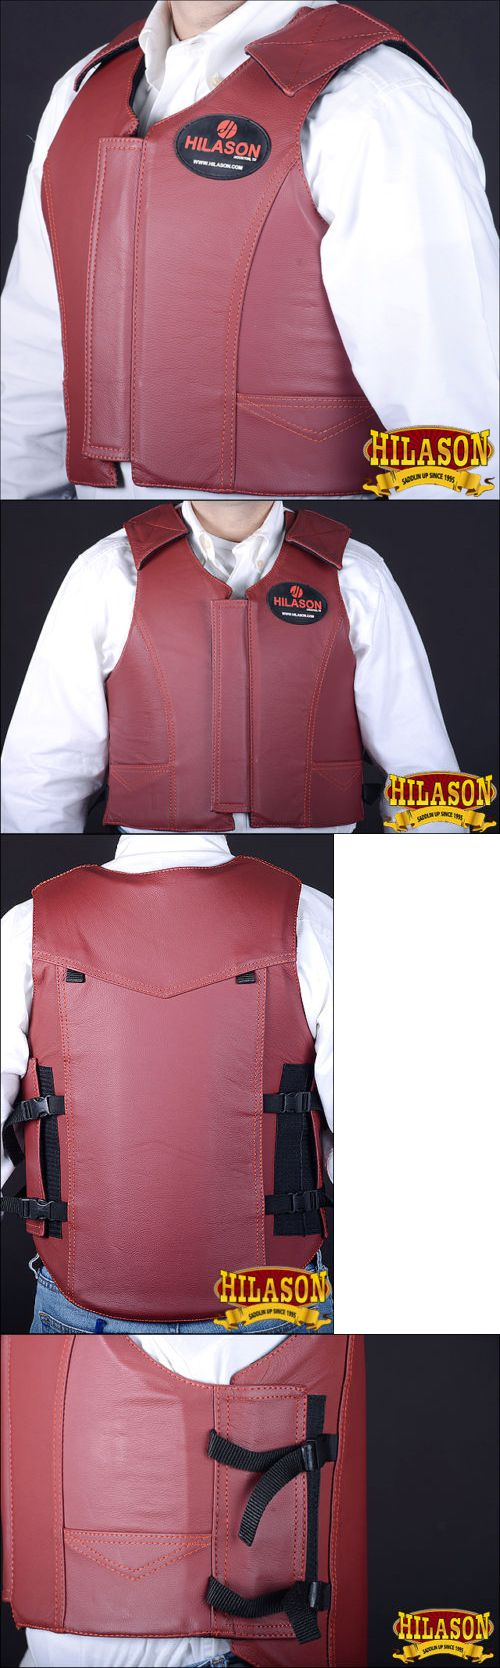 Other Protective Gear 87446: Hilason Leather Bareback Pro Rodeo Bull Riding Protective Vest -> BUY IT NOW ONLY: $149.99 on eBay!